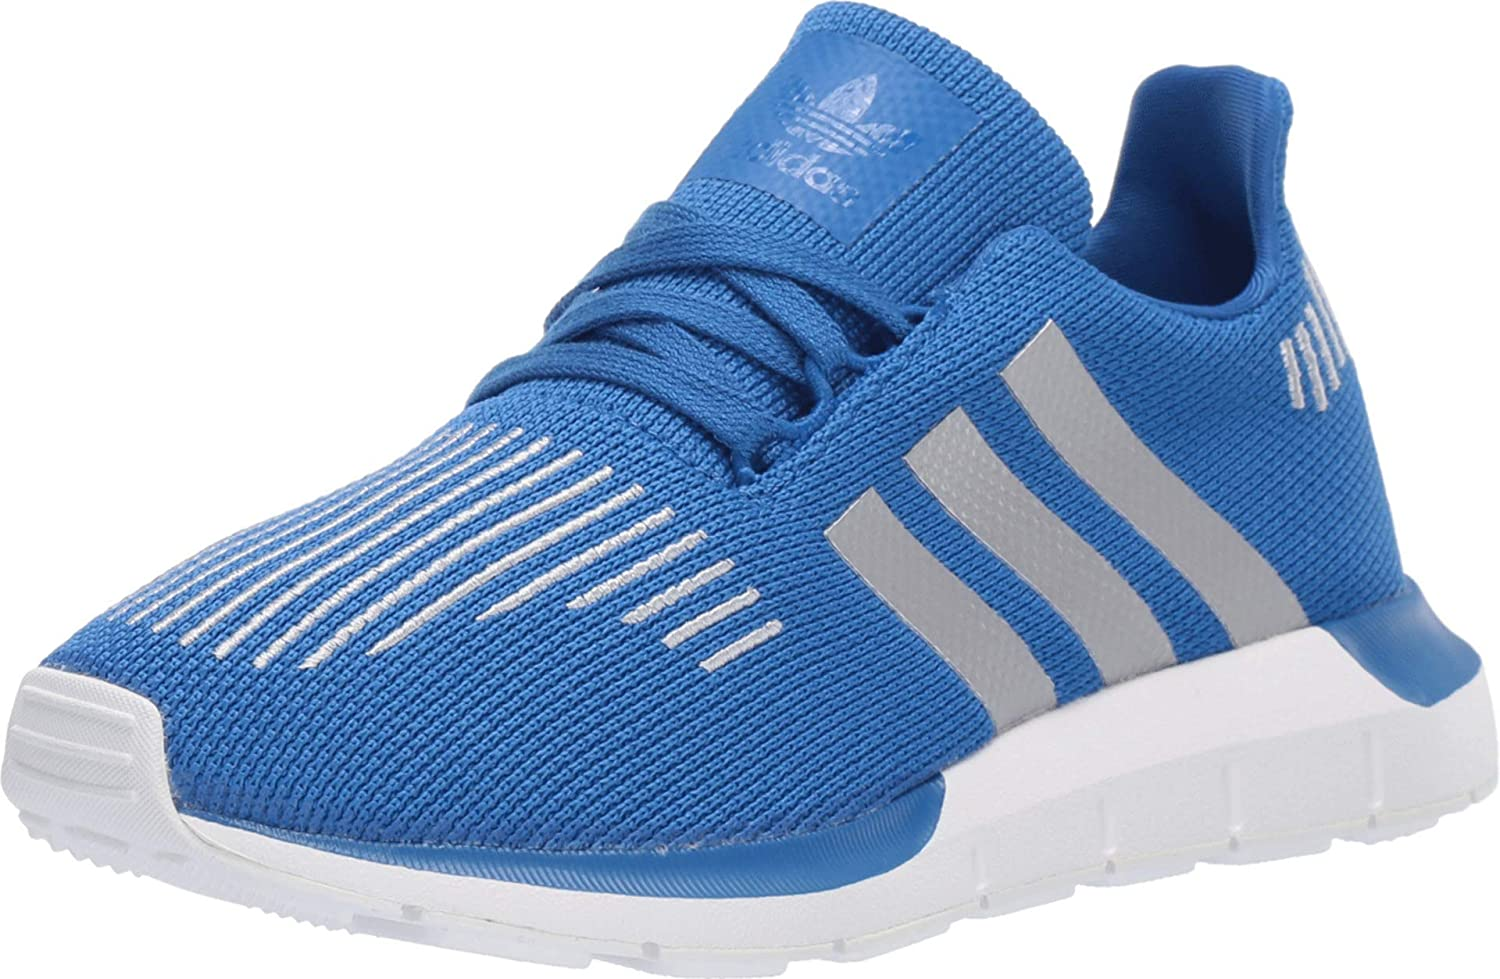 adidas Originals Kids Boys Swift Run Lace Up Sneakers Shoes Casual - Blue